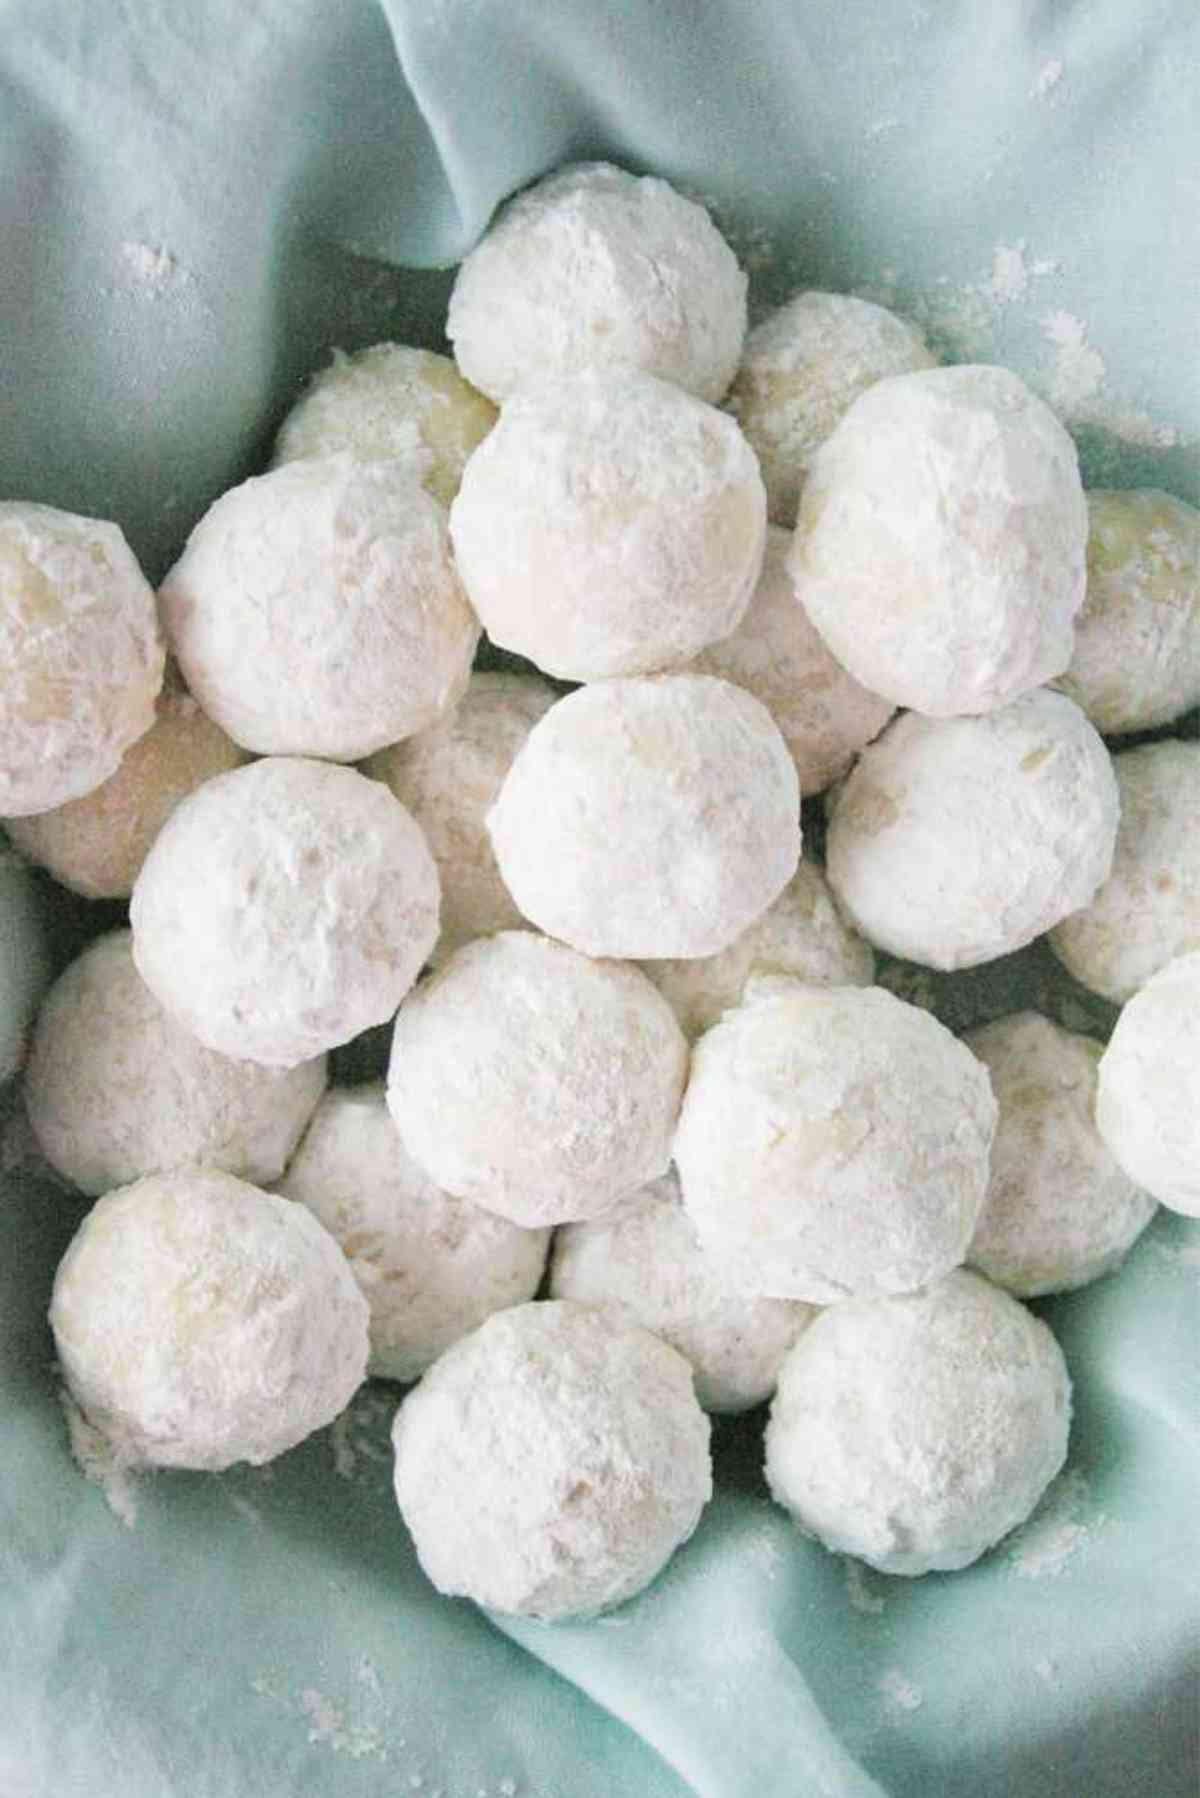 A basketful of almond snowball cookies.